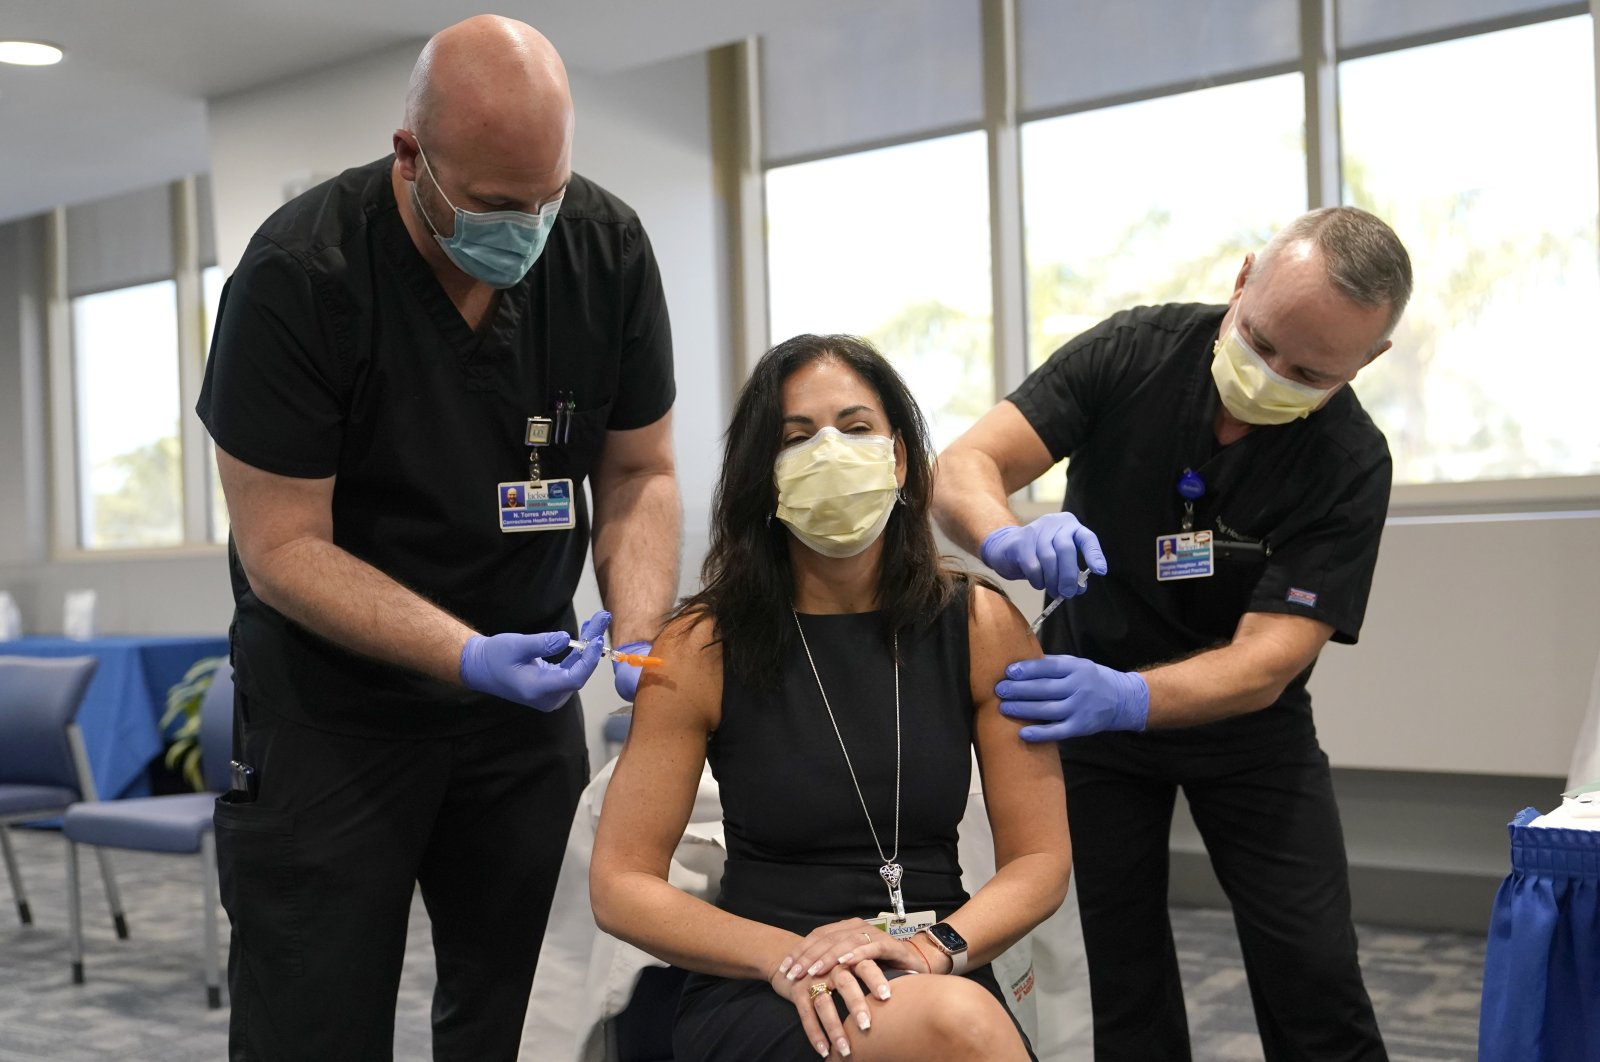 Dr. Lilian Abbo (C), receives a flu vaccine (L), and a Pfizer COVID-19 booster shot (R), at Jackson Memorial Hospital, in Miami, U.S., Oct. 5, 2021. (AP Photo)